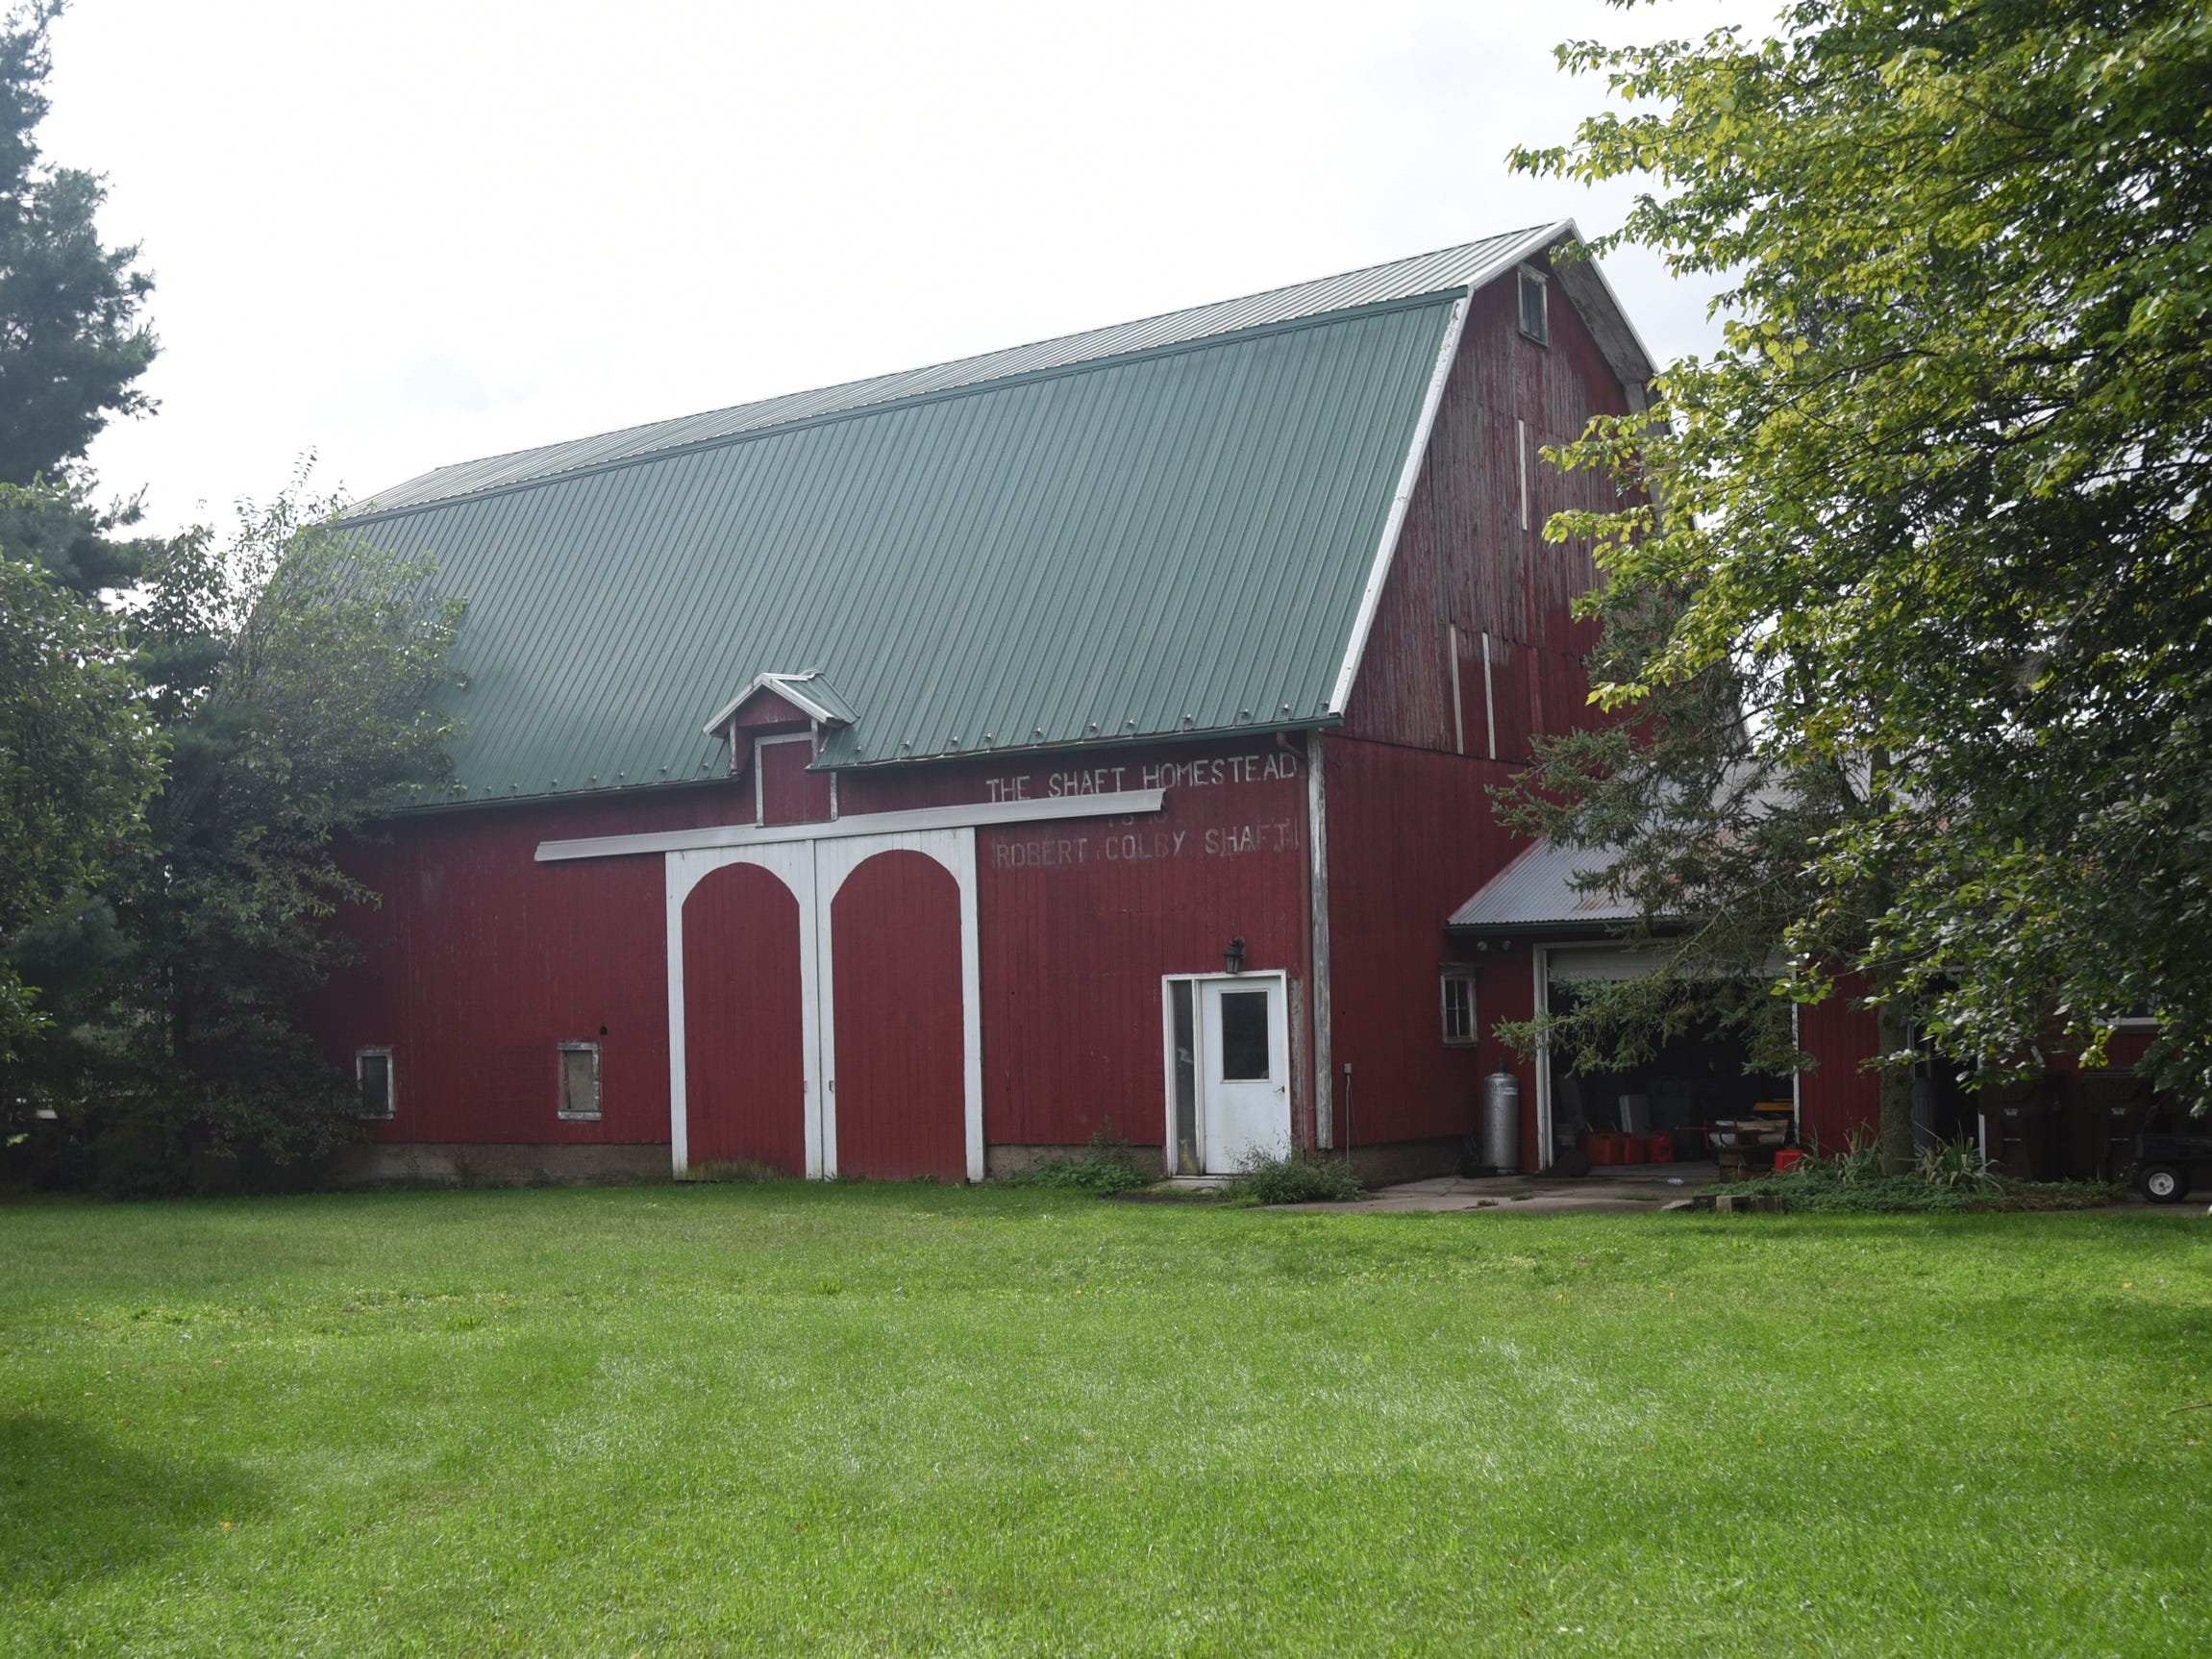 The barn and horse stable at the historic Shaft homestead in Shaftsburg.  The five bedroom farmhouse  was built in 1846.